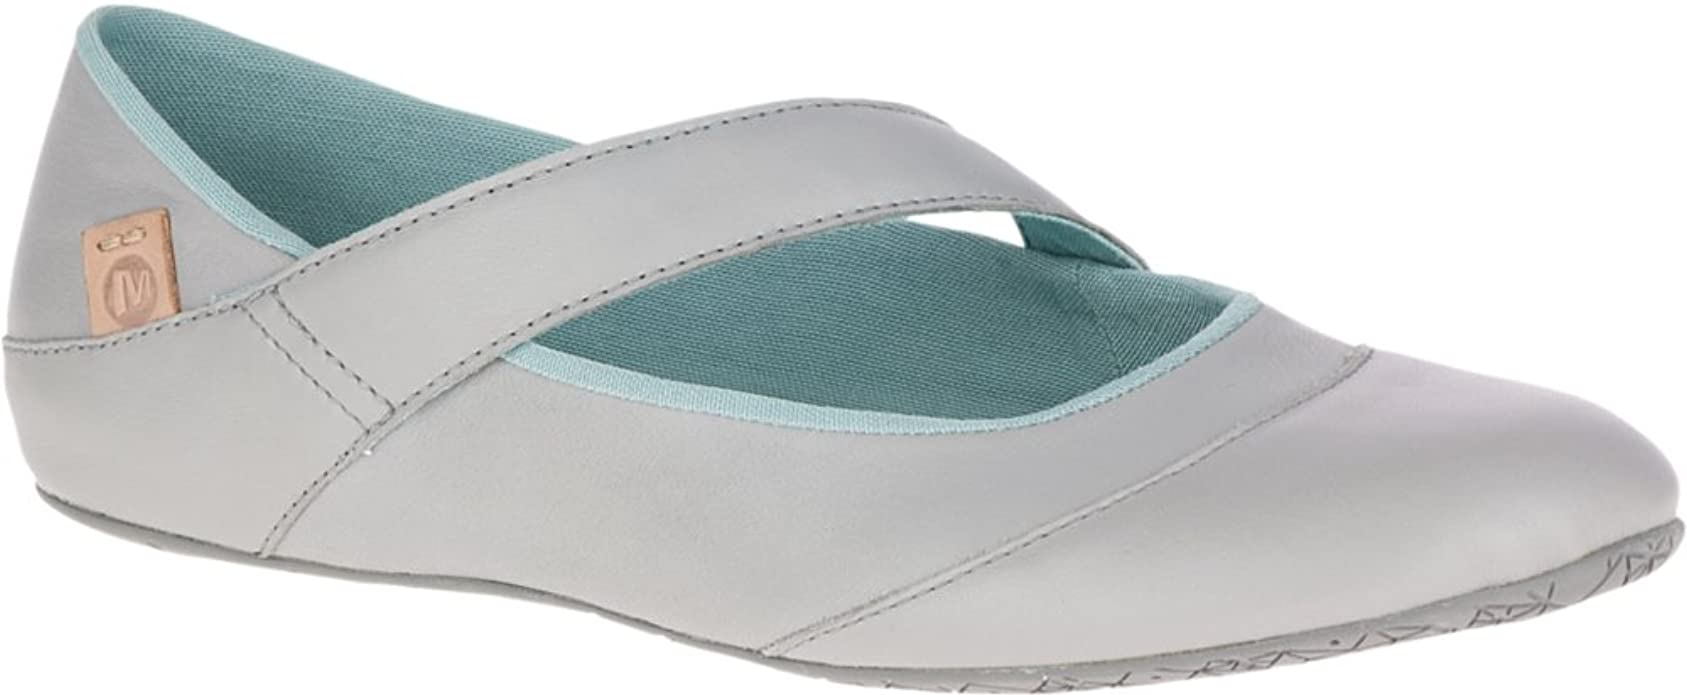 Merrell Womens Inde Lave Mj Mary Jane Flat: Amazon.ca: Shoes